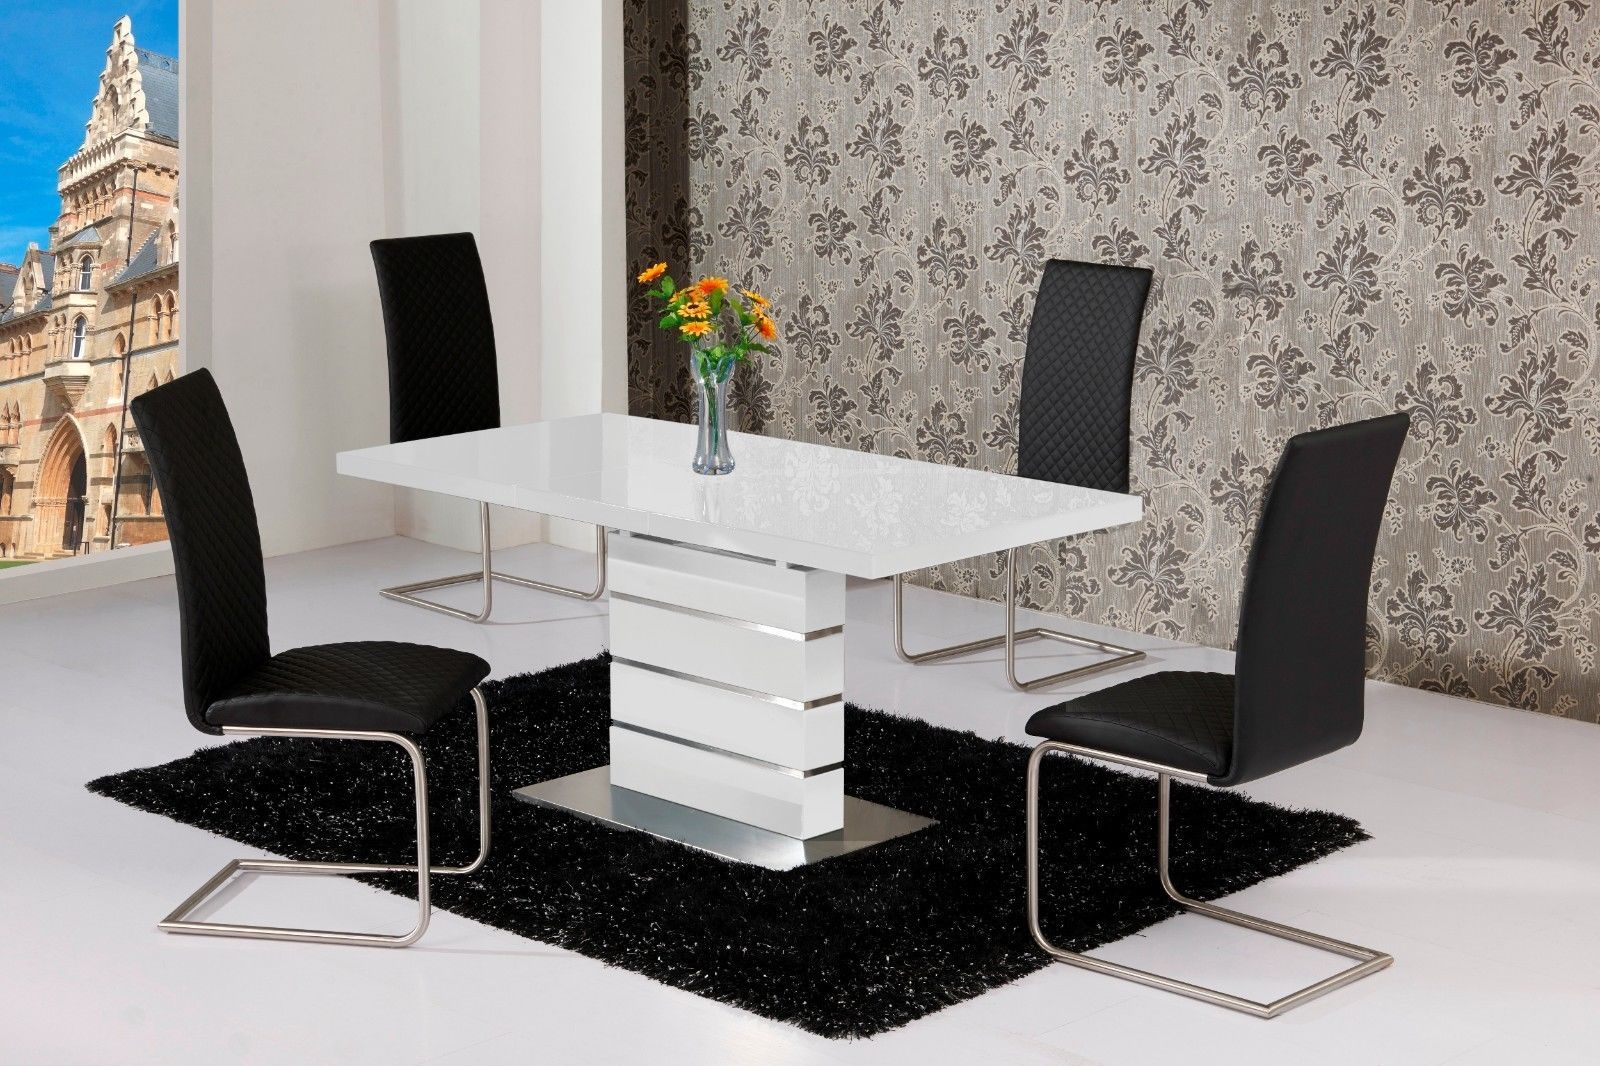 chair match cappuccino set kol and sets collections kitchen mix fine item furniture dining table piece coaster